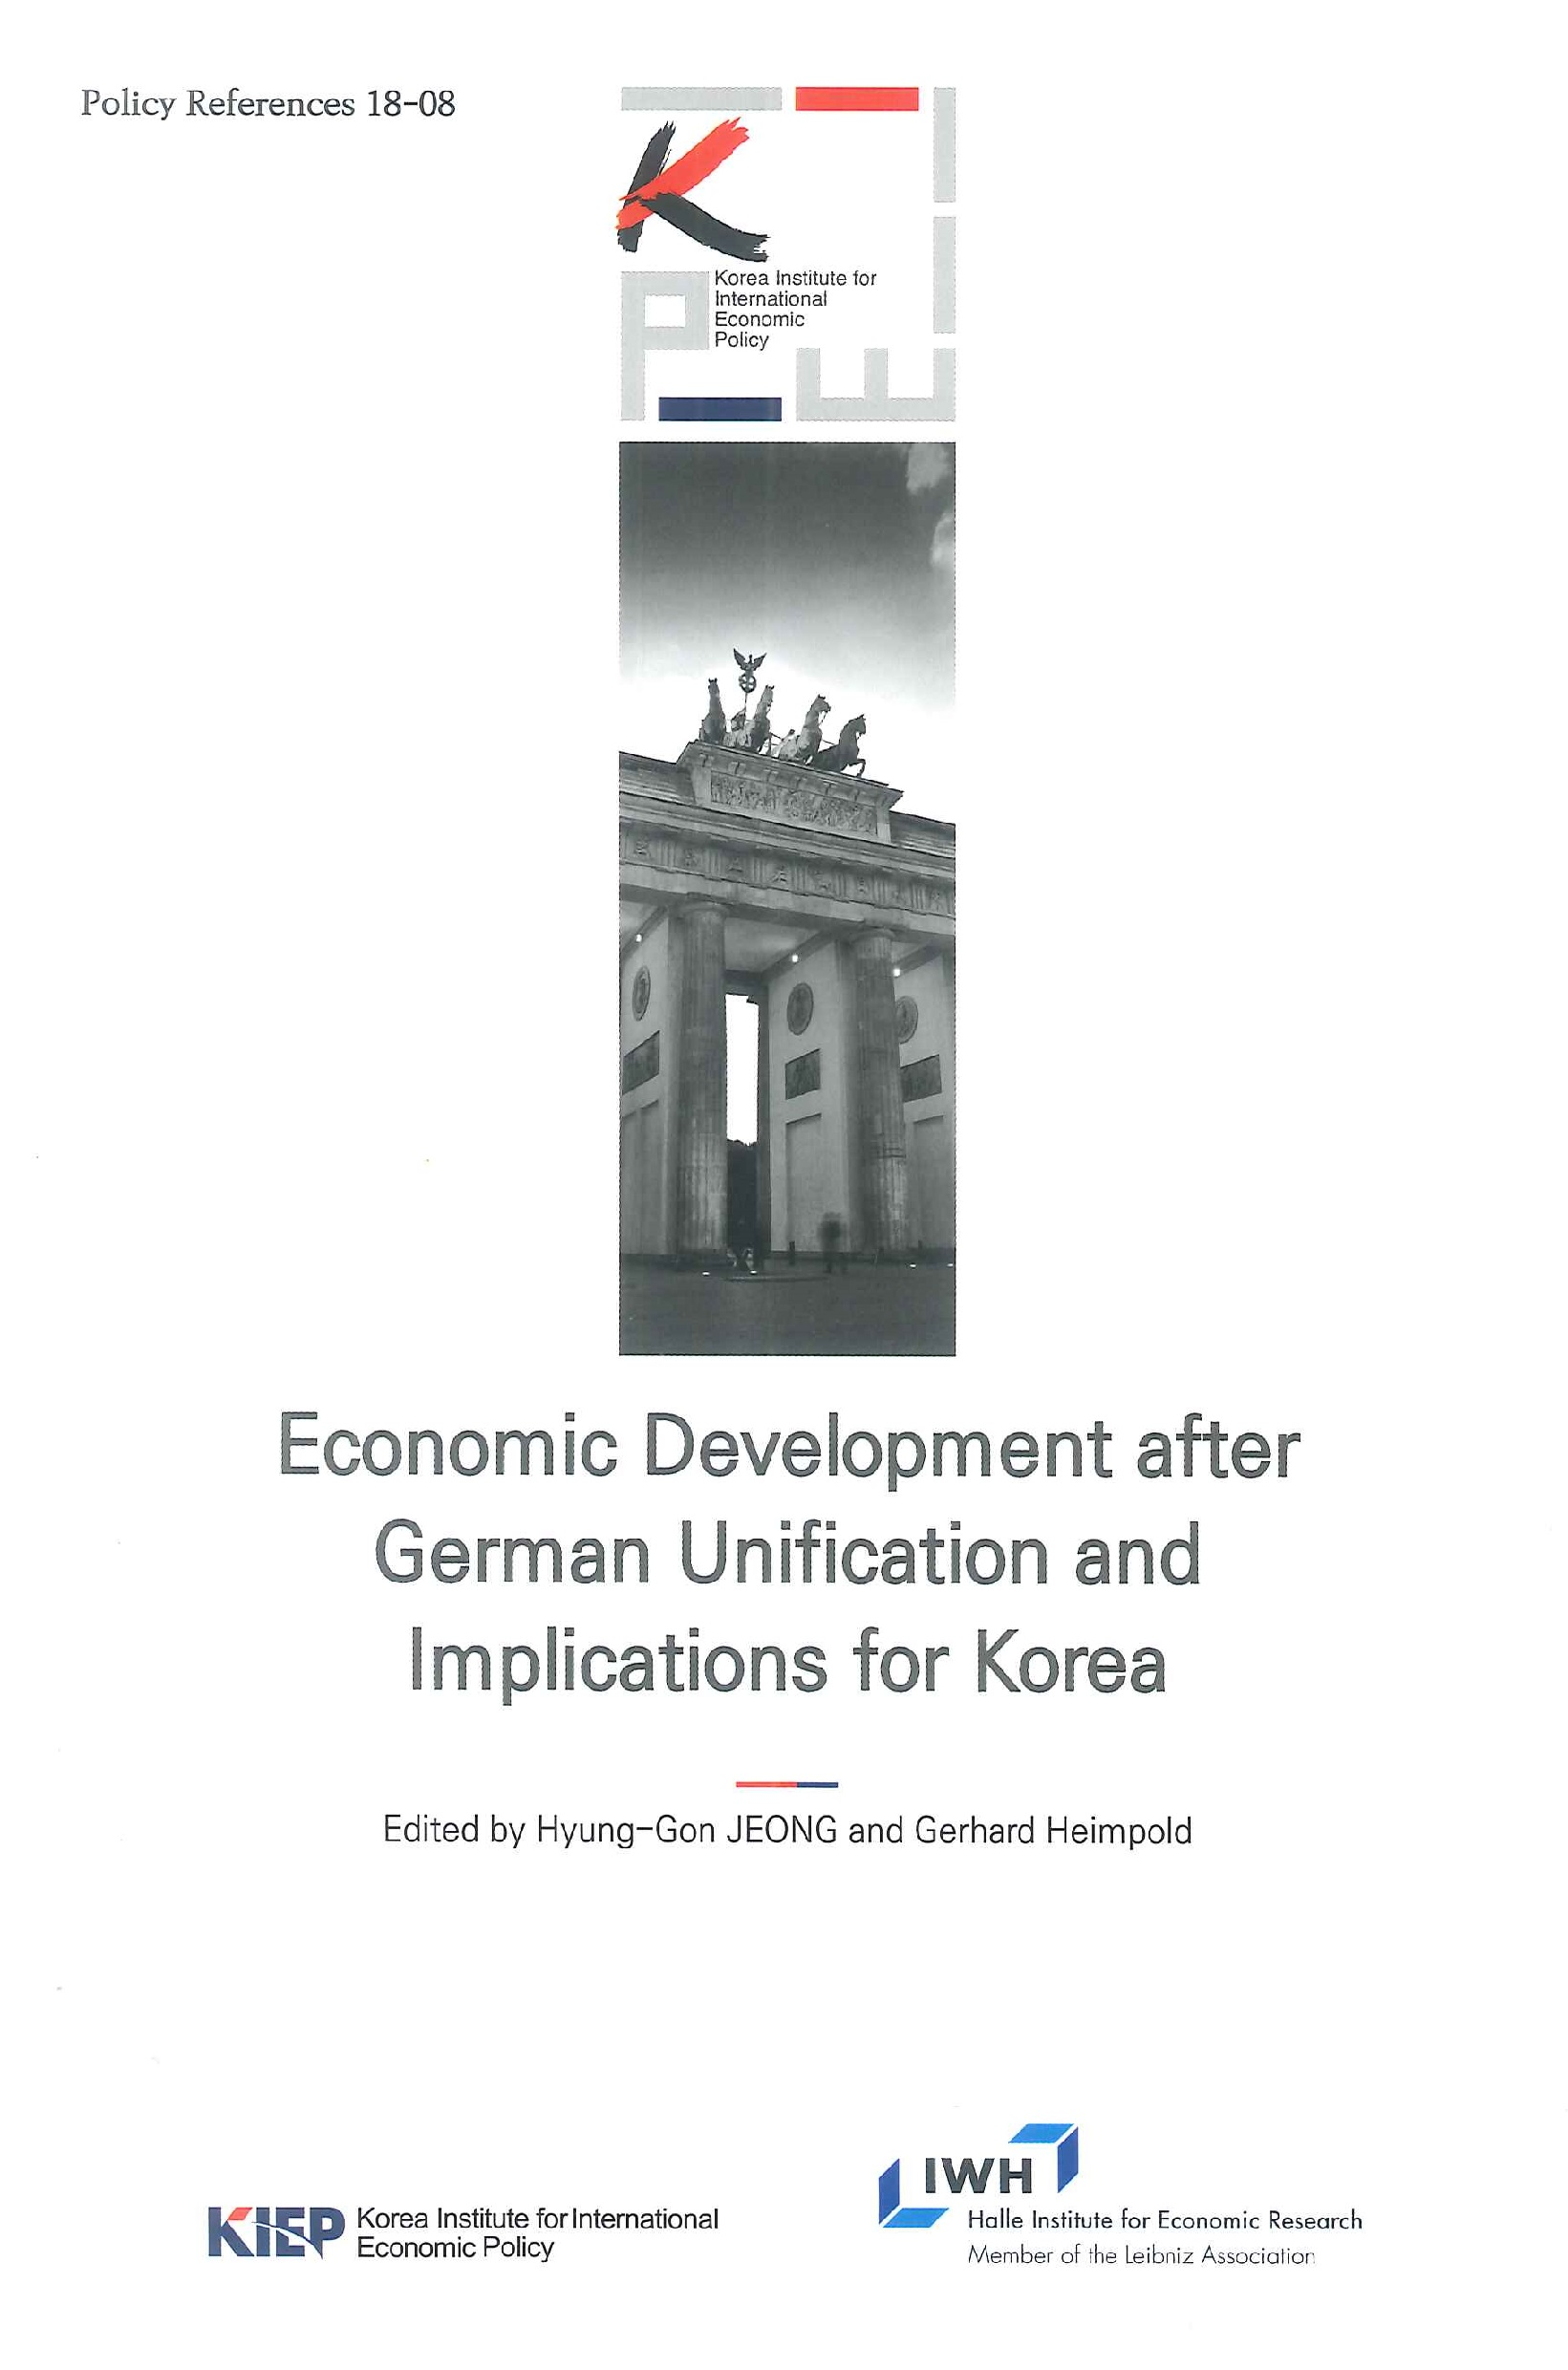 Economic development after German unification and implications for Korea